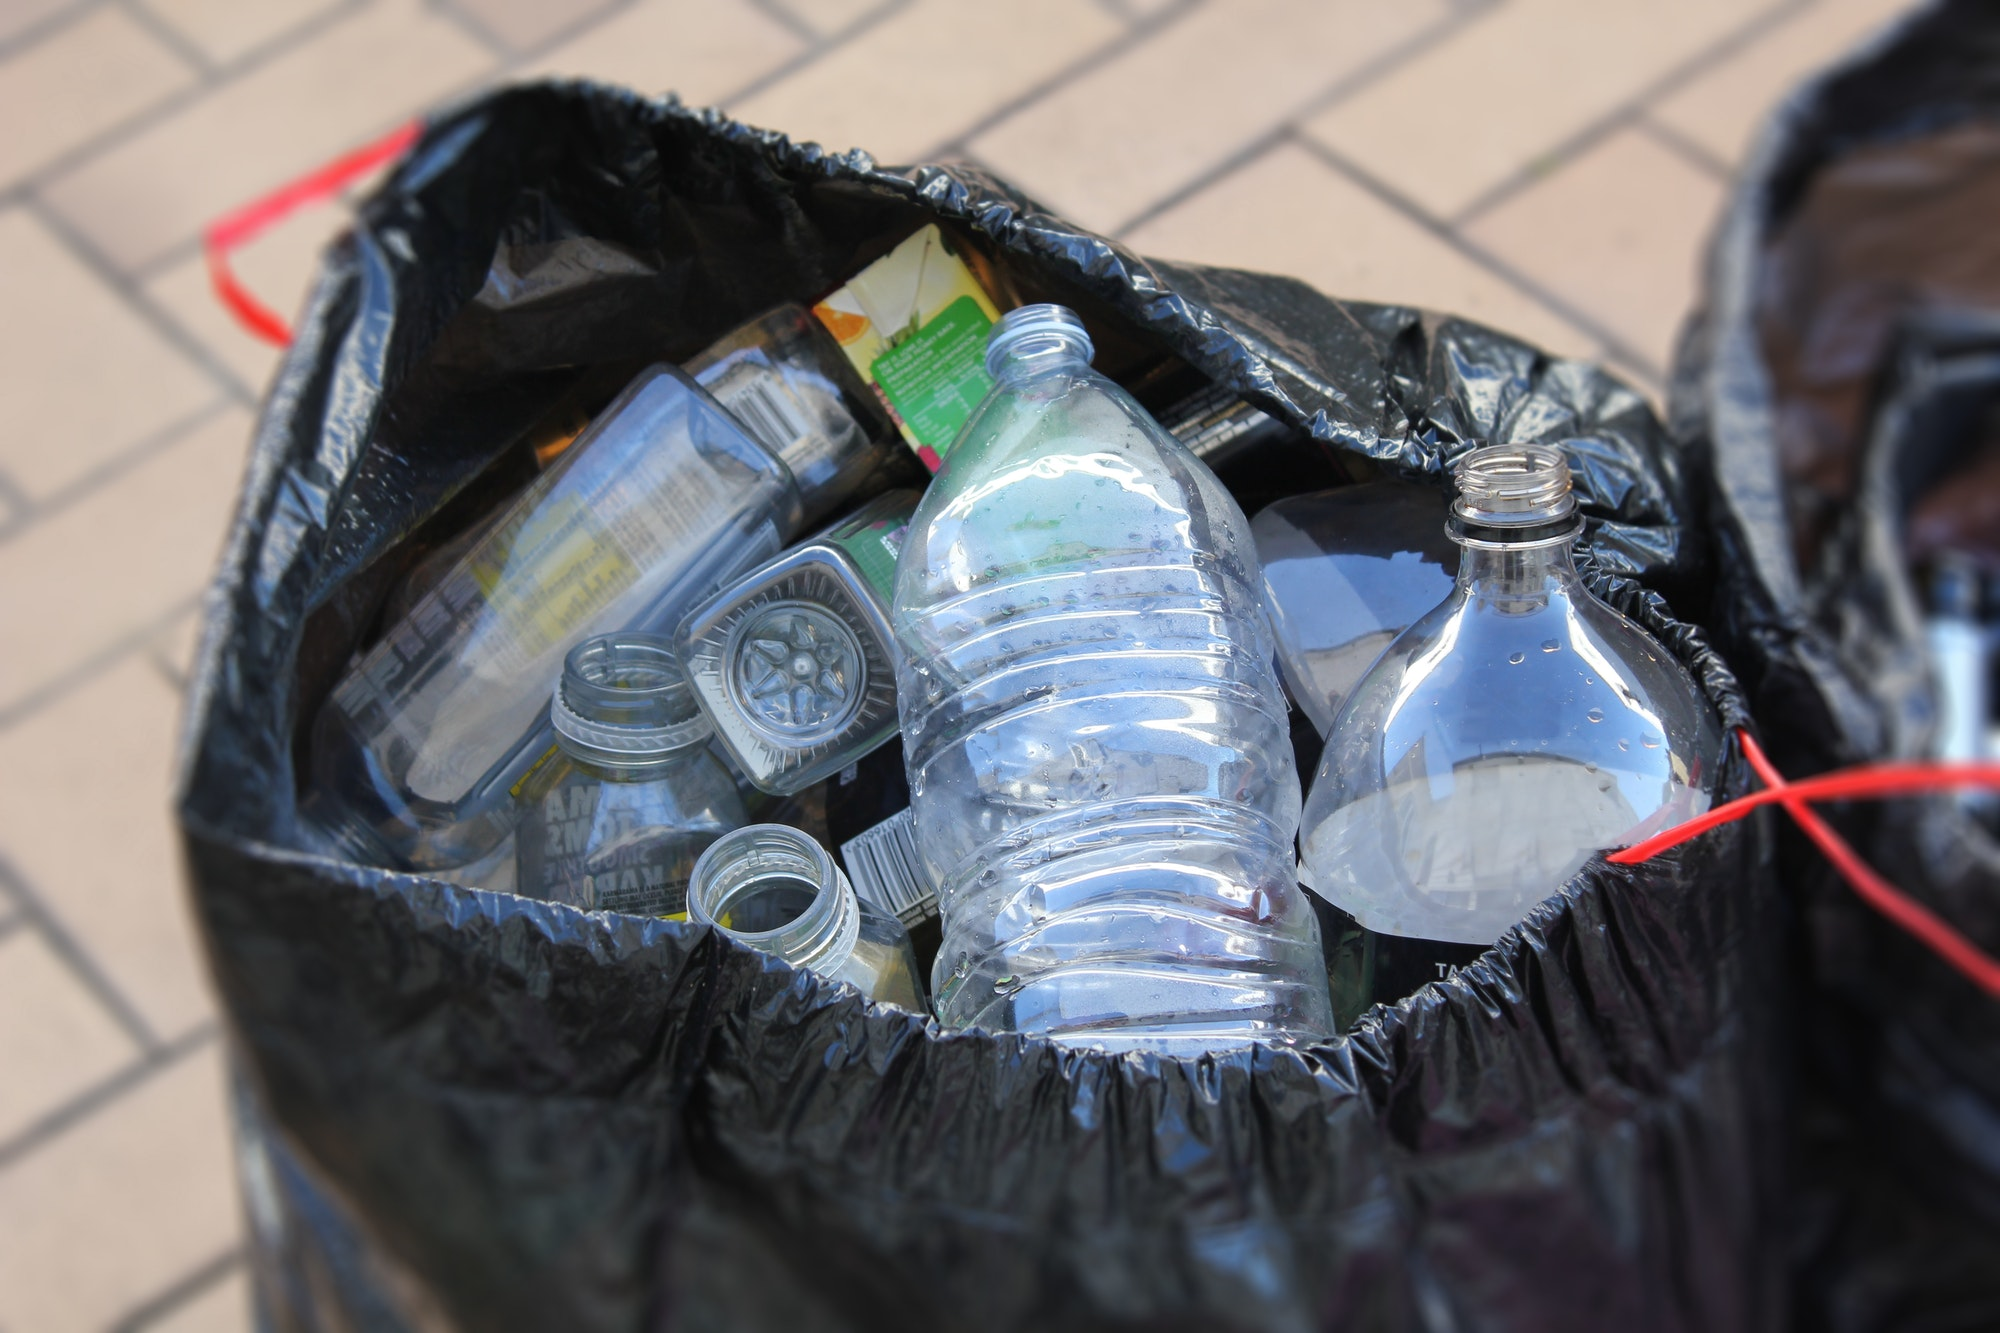 Taking plastic bottles to the recycling center